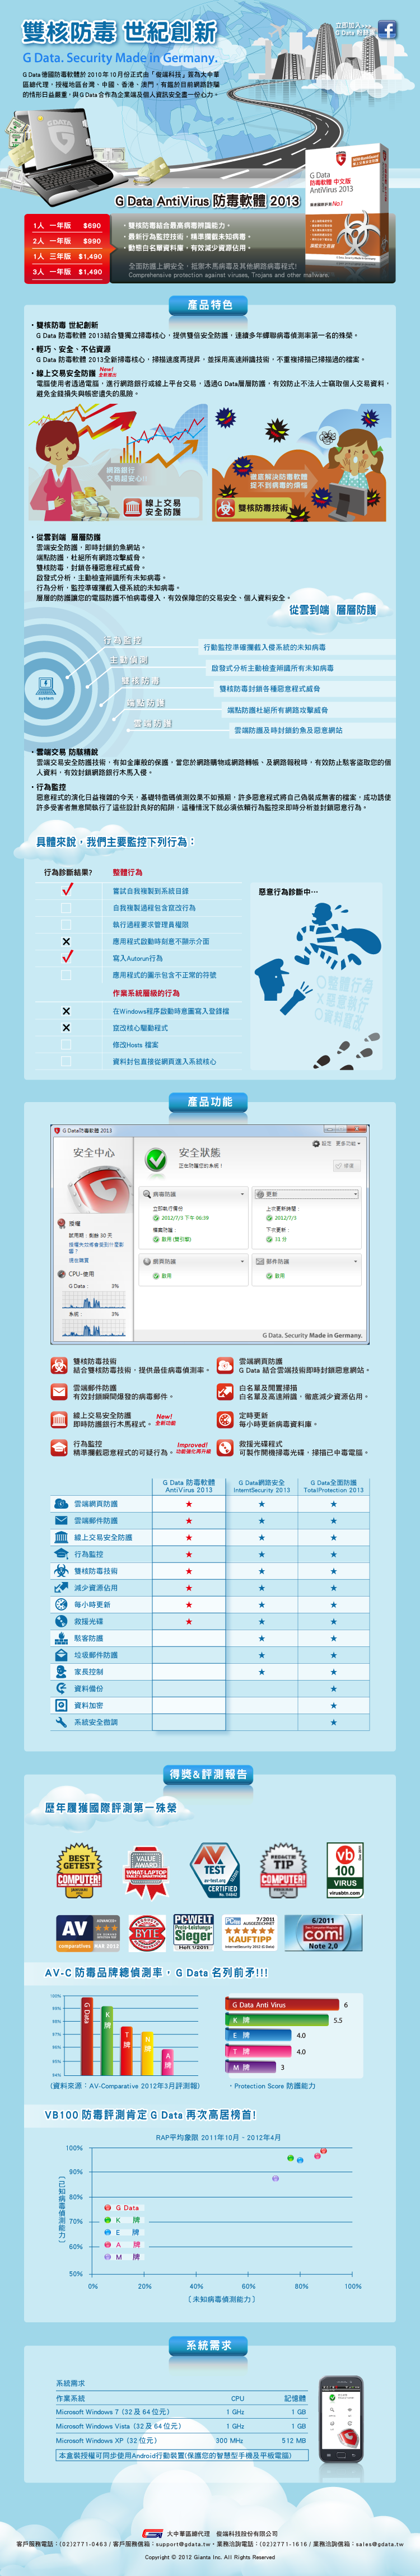 G Data, antivirus,security,防毒軟體,飛比特科技,fibit,,